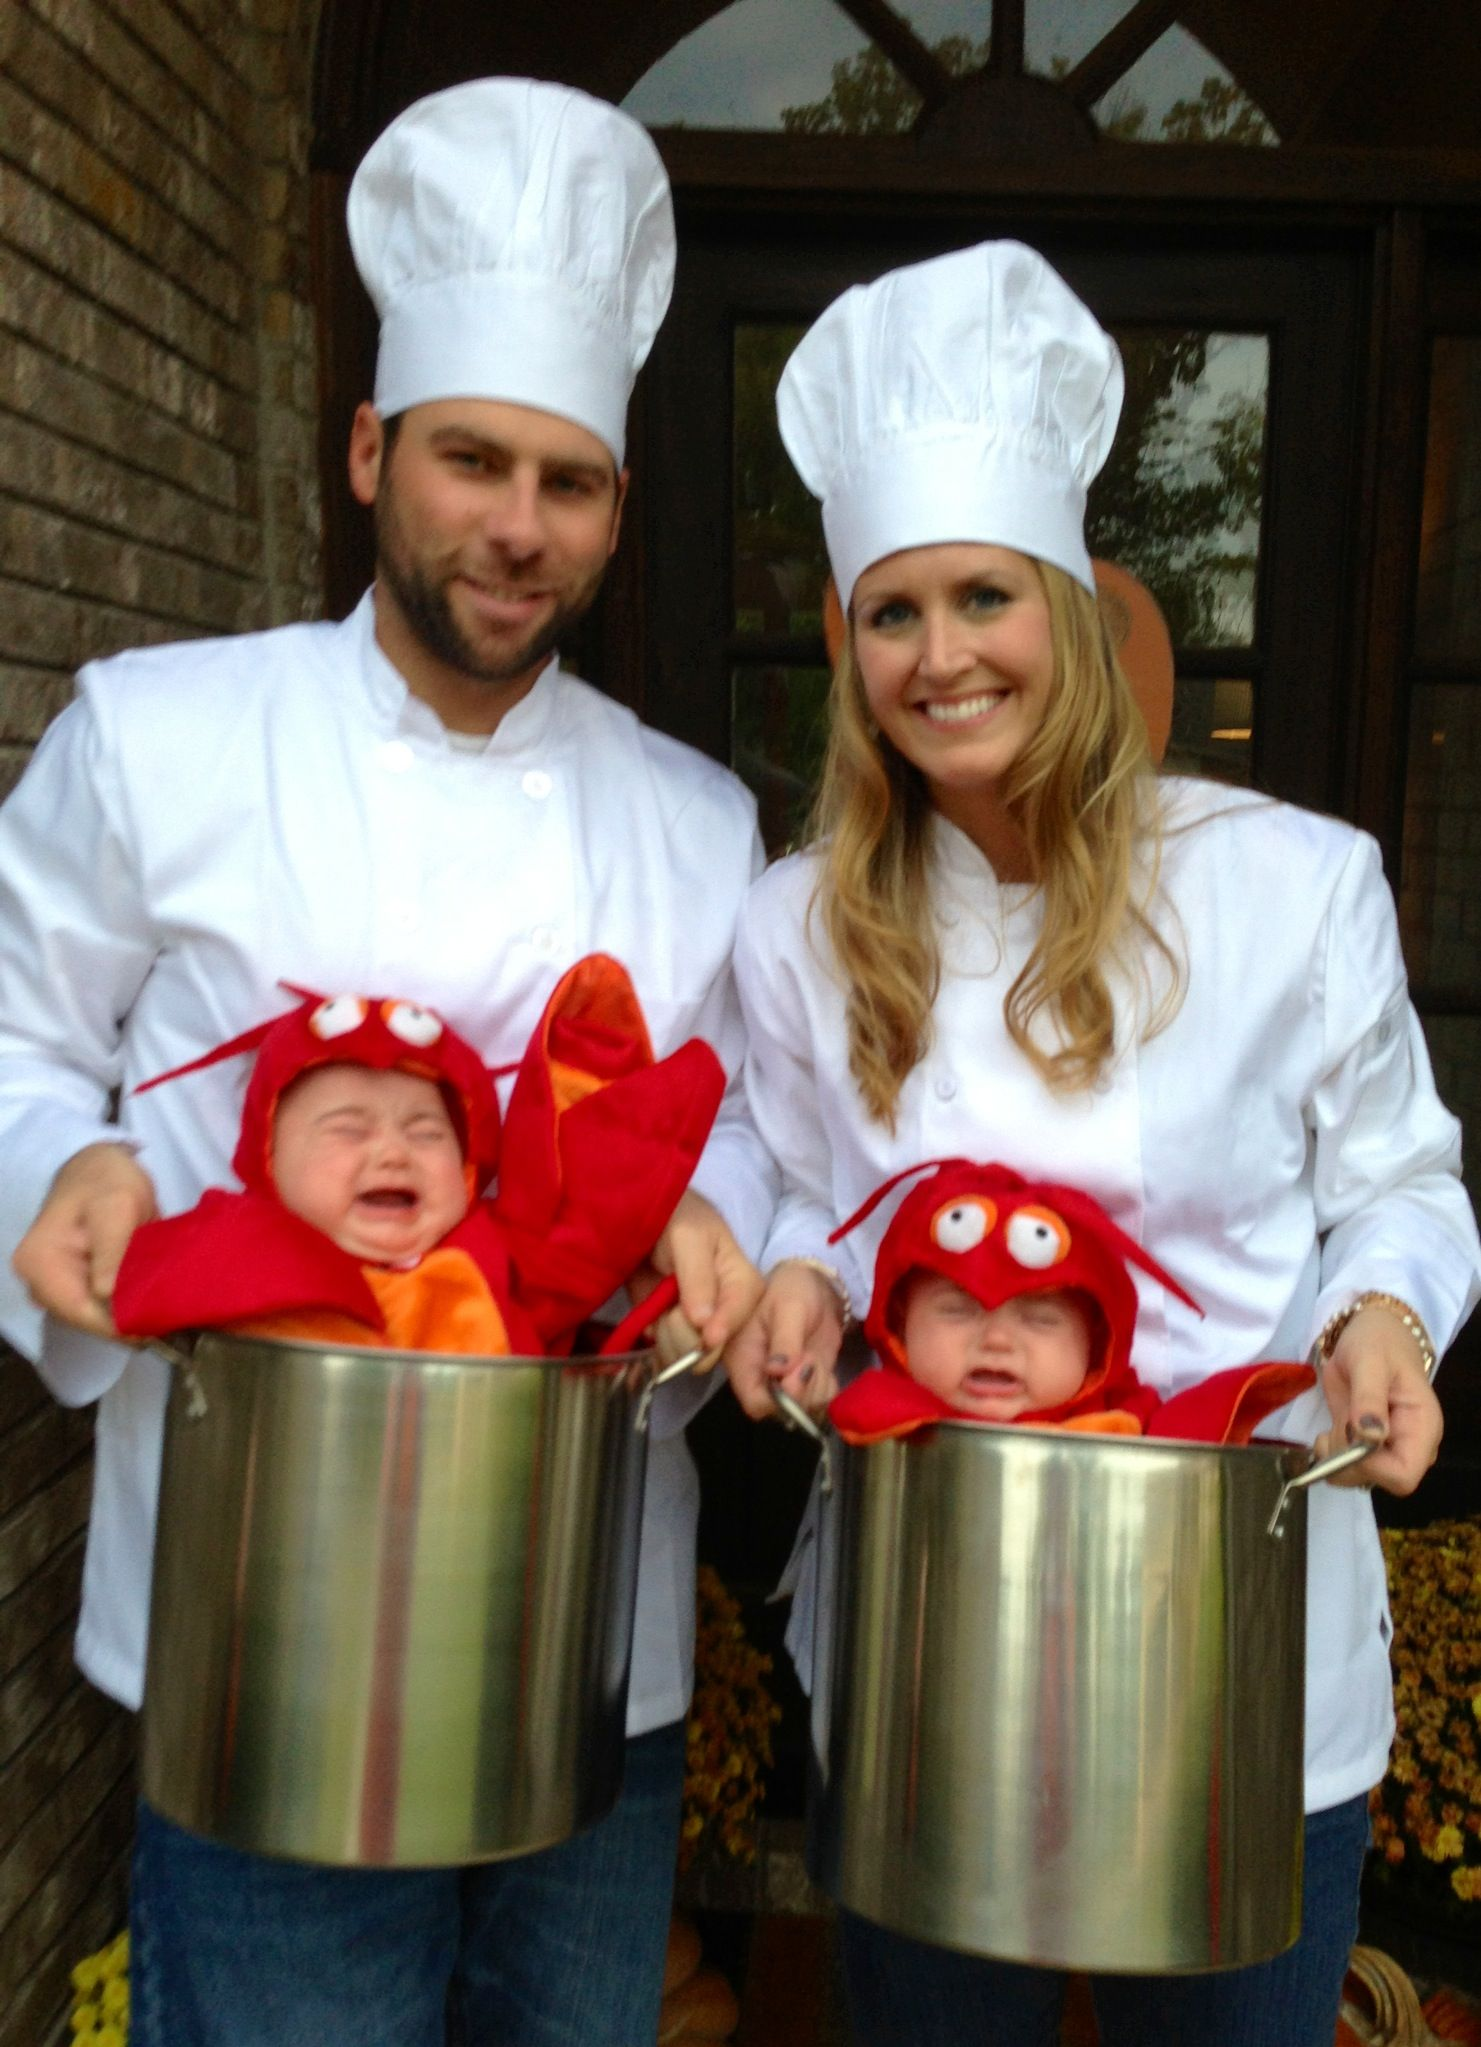 Our twin girls as lobsters and us as the chefs Twins